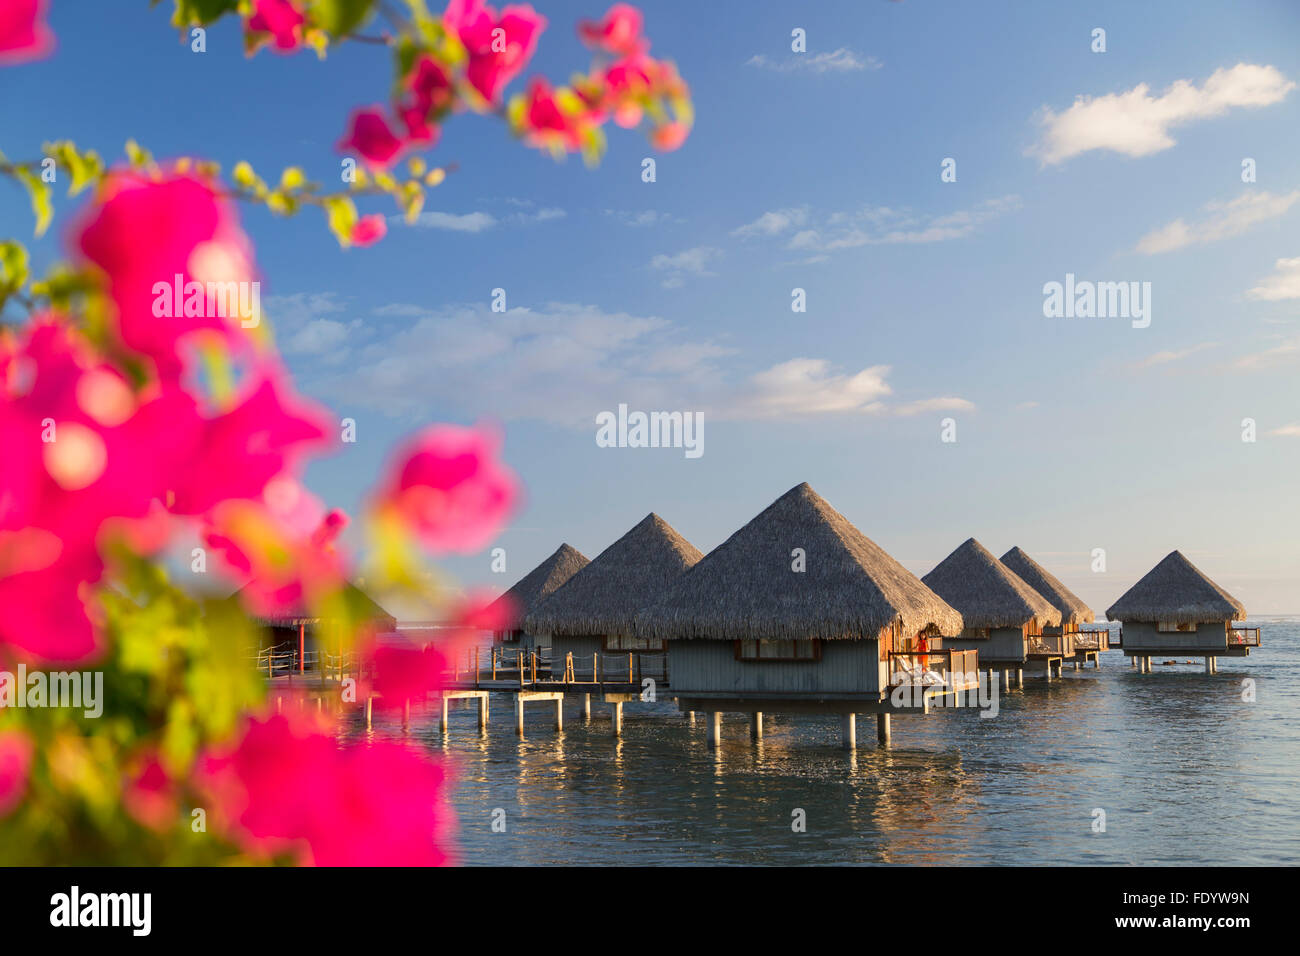 Overwater bungalows at Le Meridien Tahiti Hotel, Pape'ete, Tahiti, French Polynesia - Stock Image